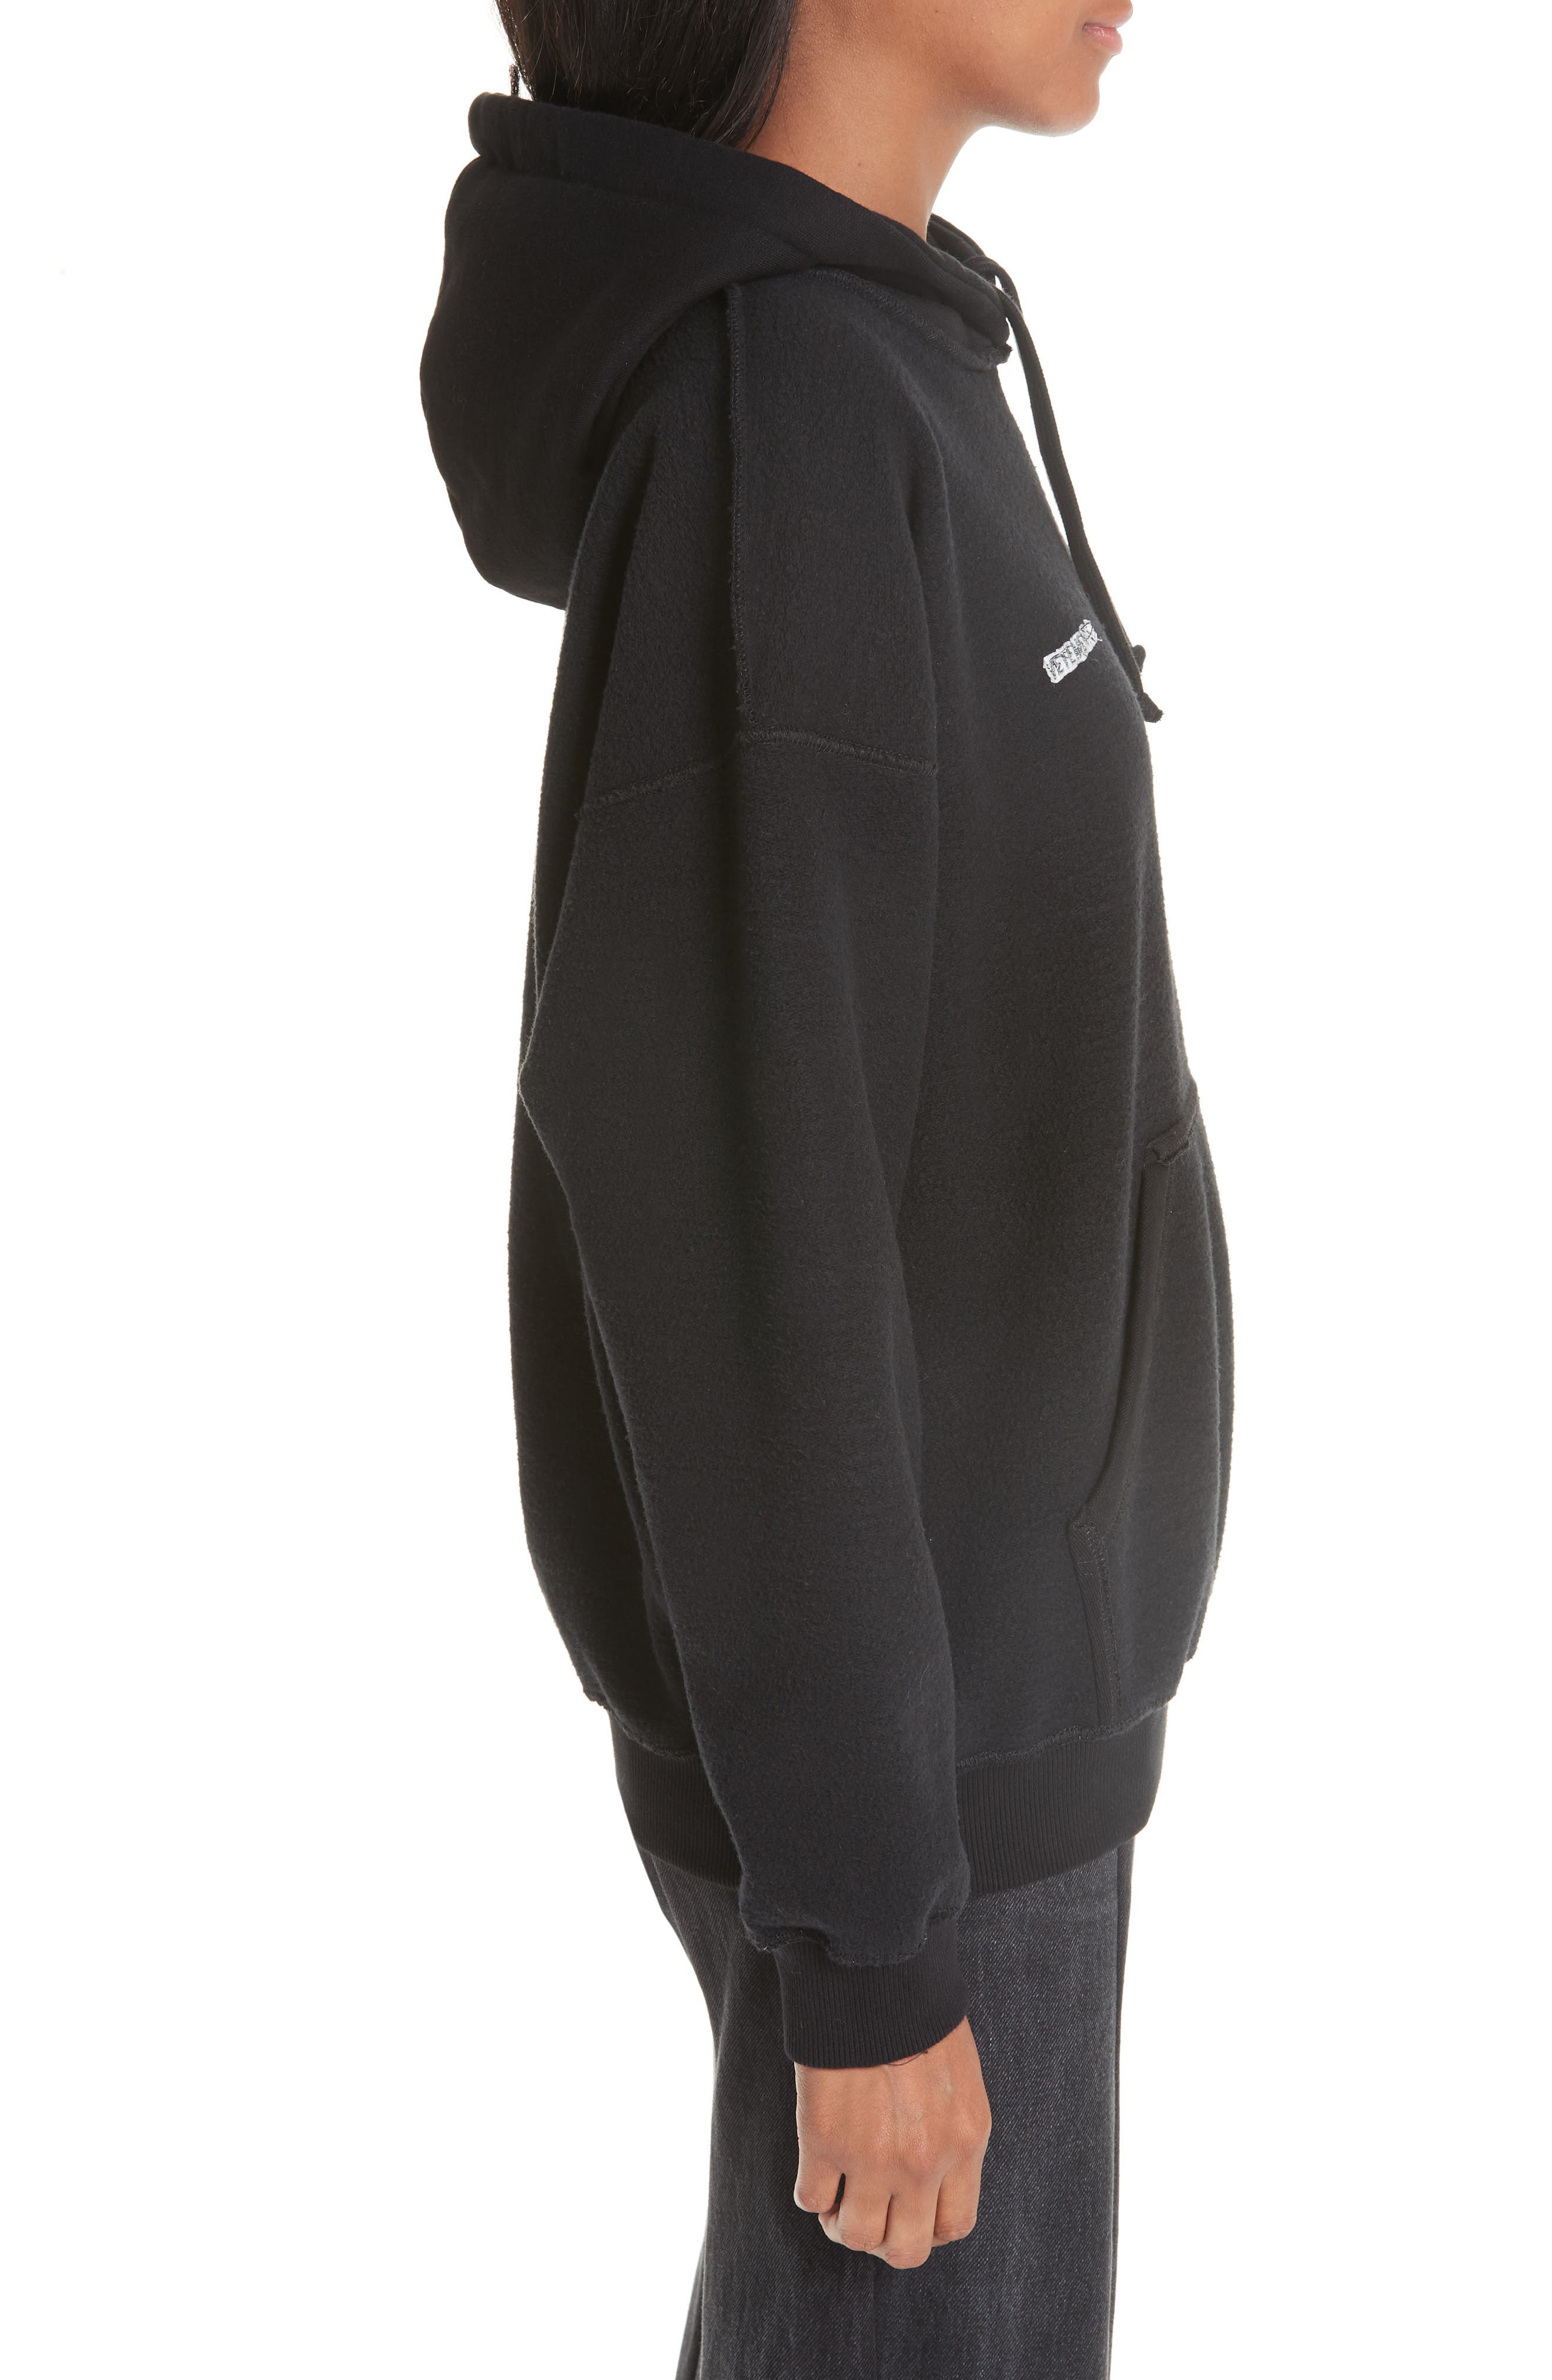 Inside-Out Hoodie,                             Alternate thumbnail 3, color,                             BLACK